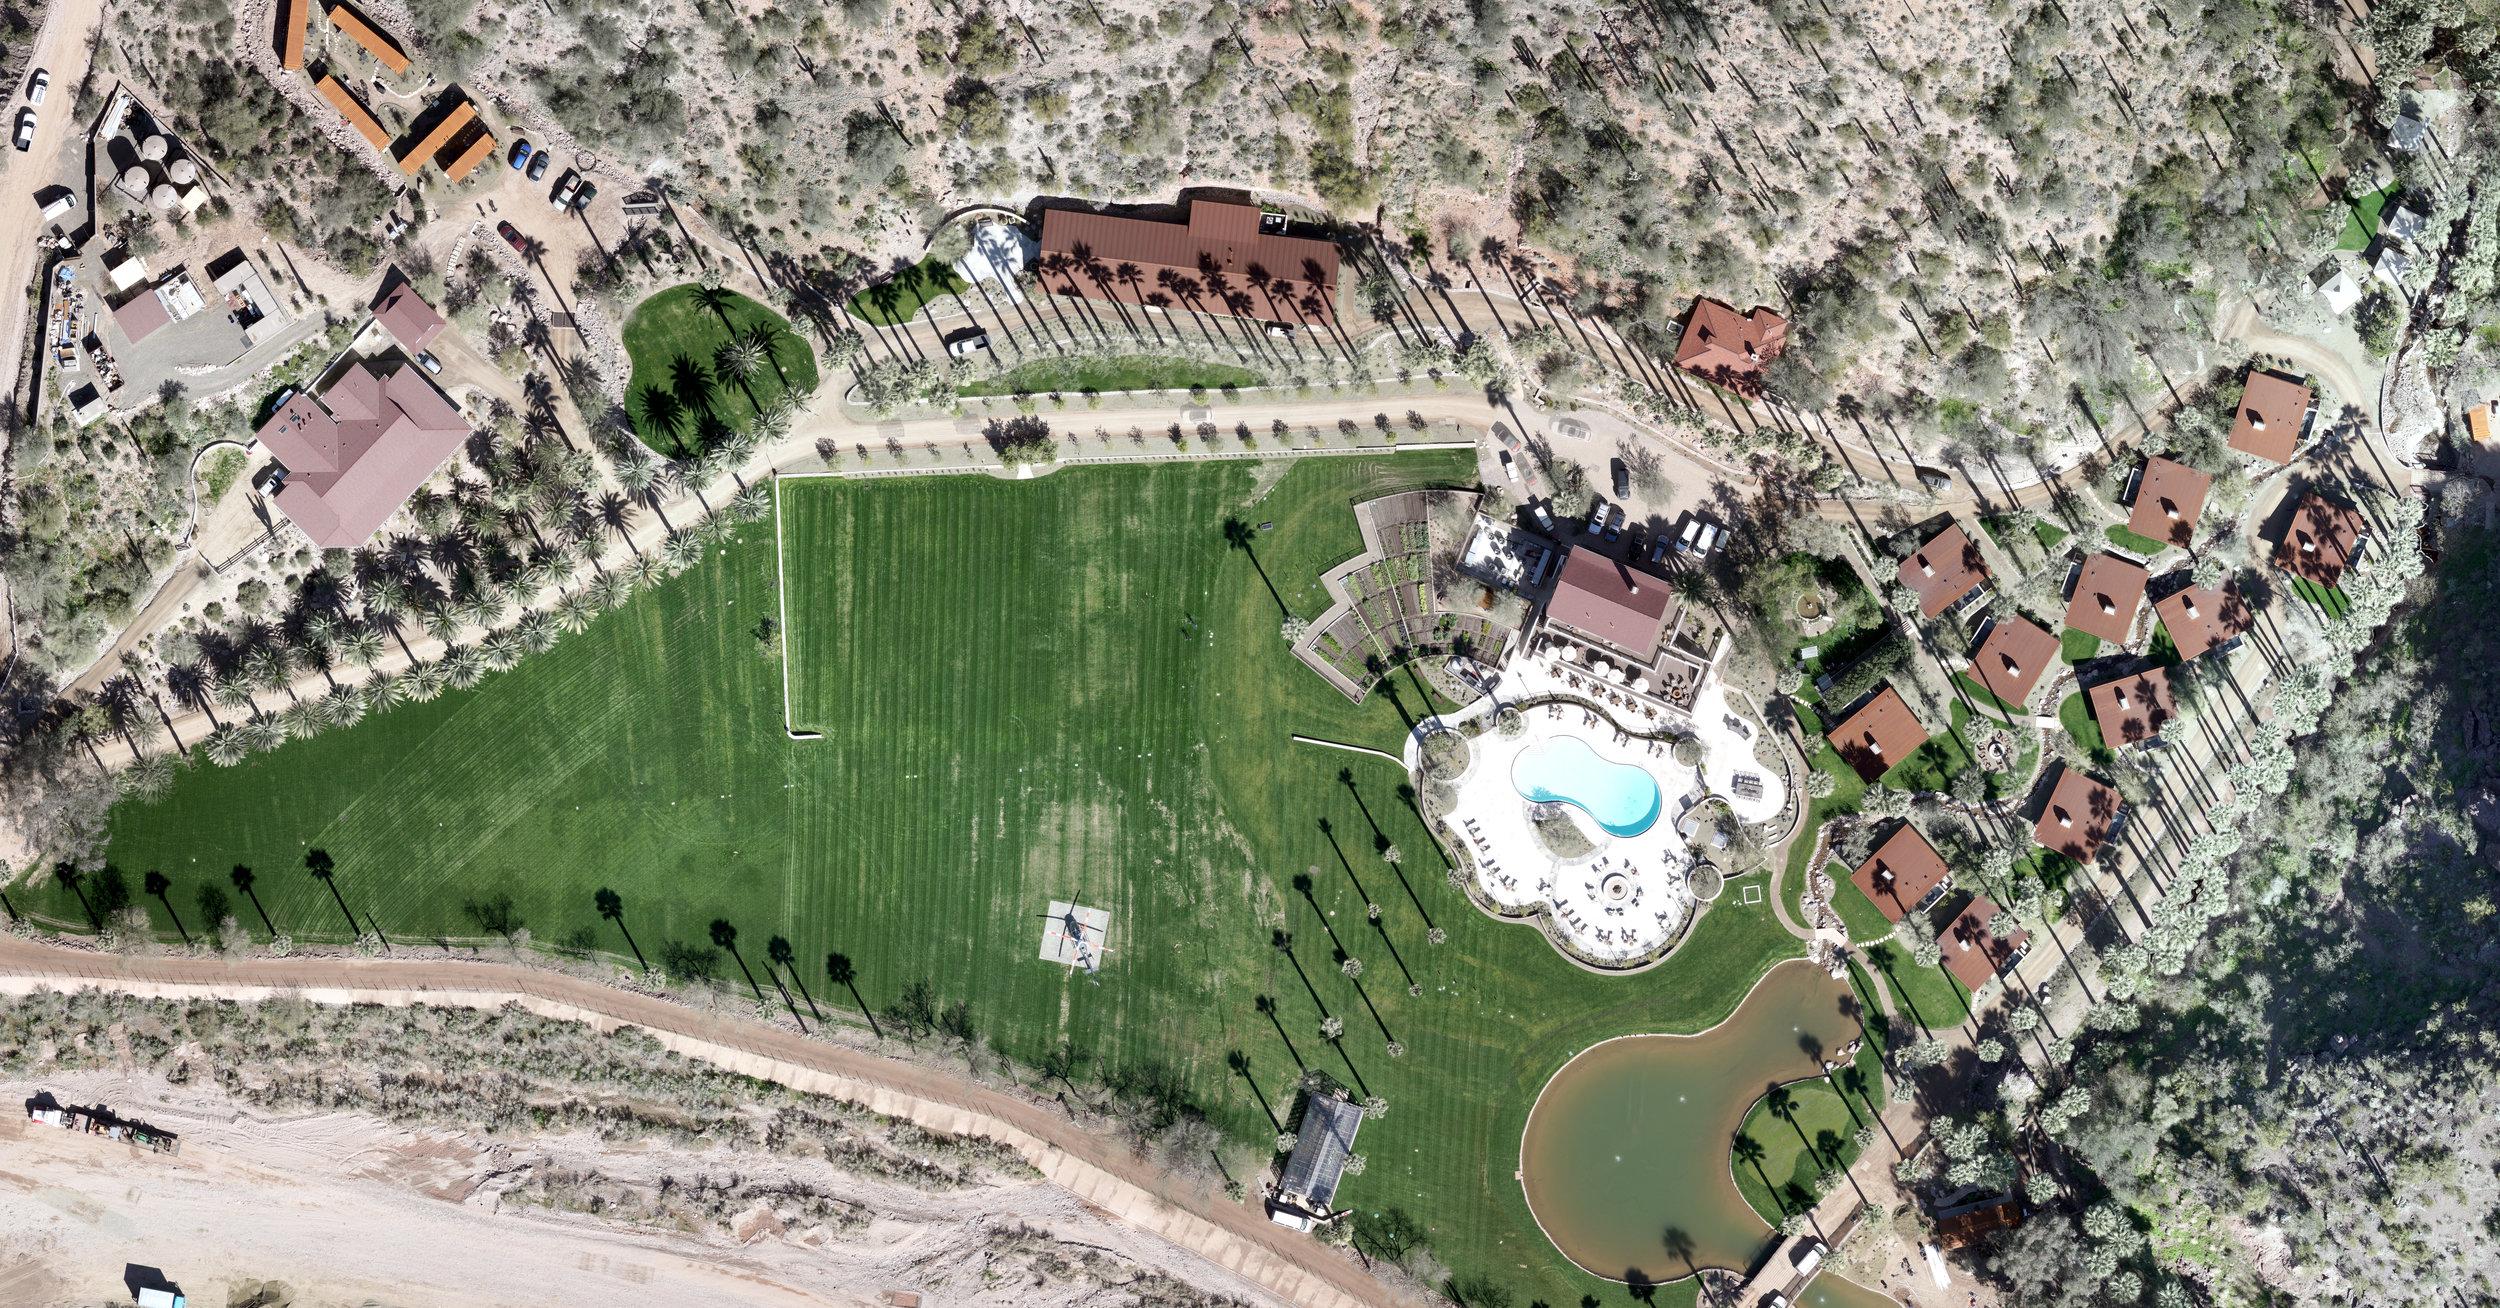 Castle hot springs from 600 feet above. Taken with the Wingtra VTOL unmanned aerial system and processed with Pix4D.